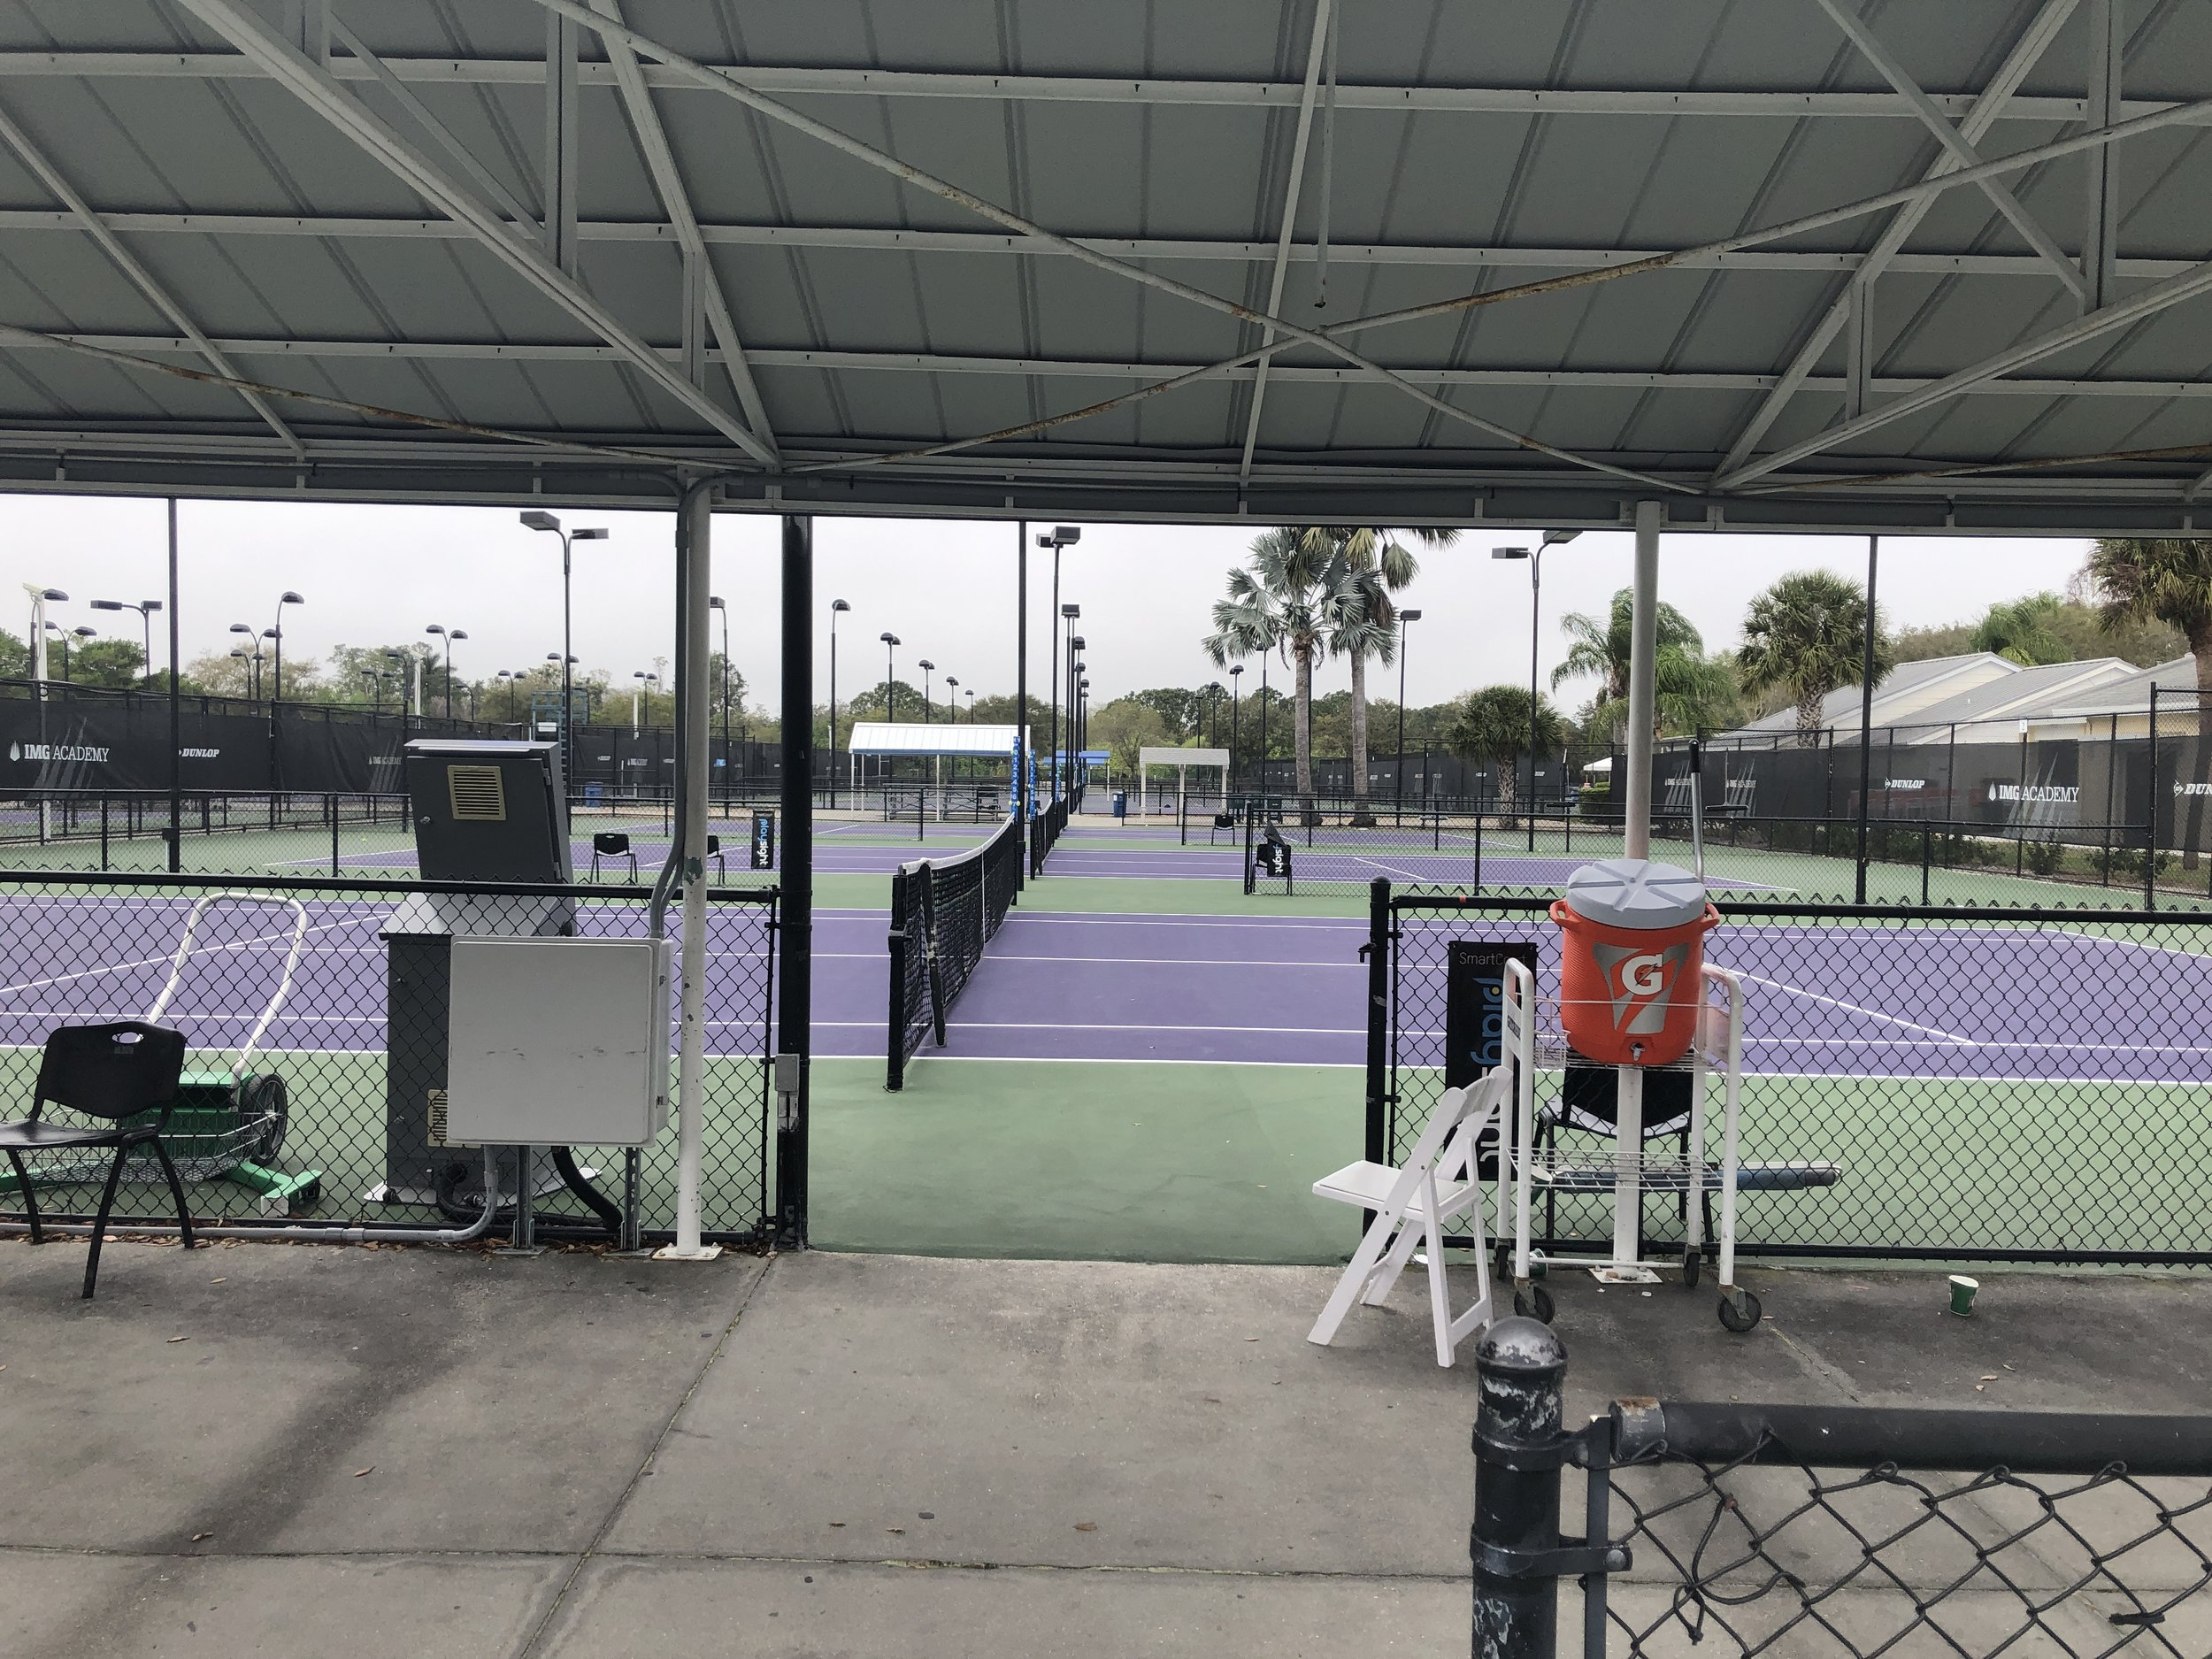 A recent look at the IMG courts on the weekend - while we practiced Sat & Sun, the courts stayed empty…